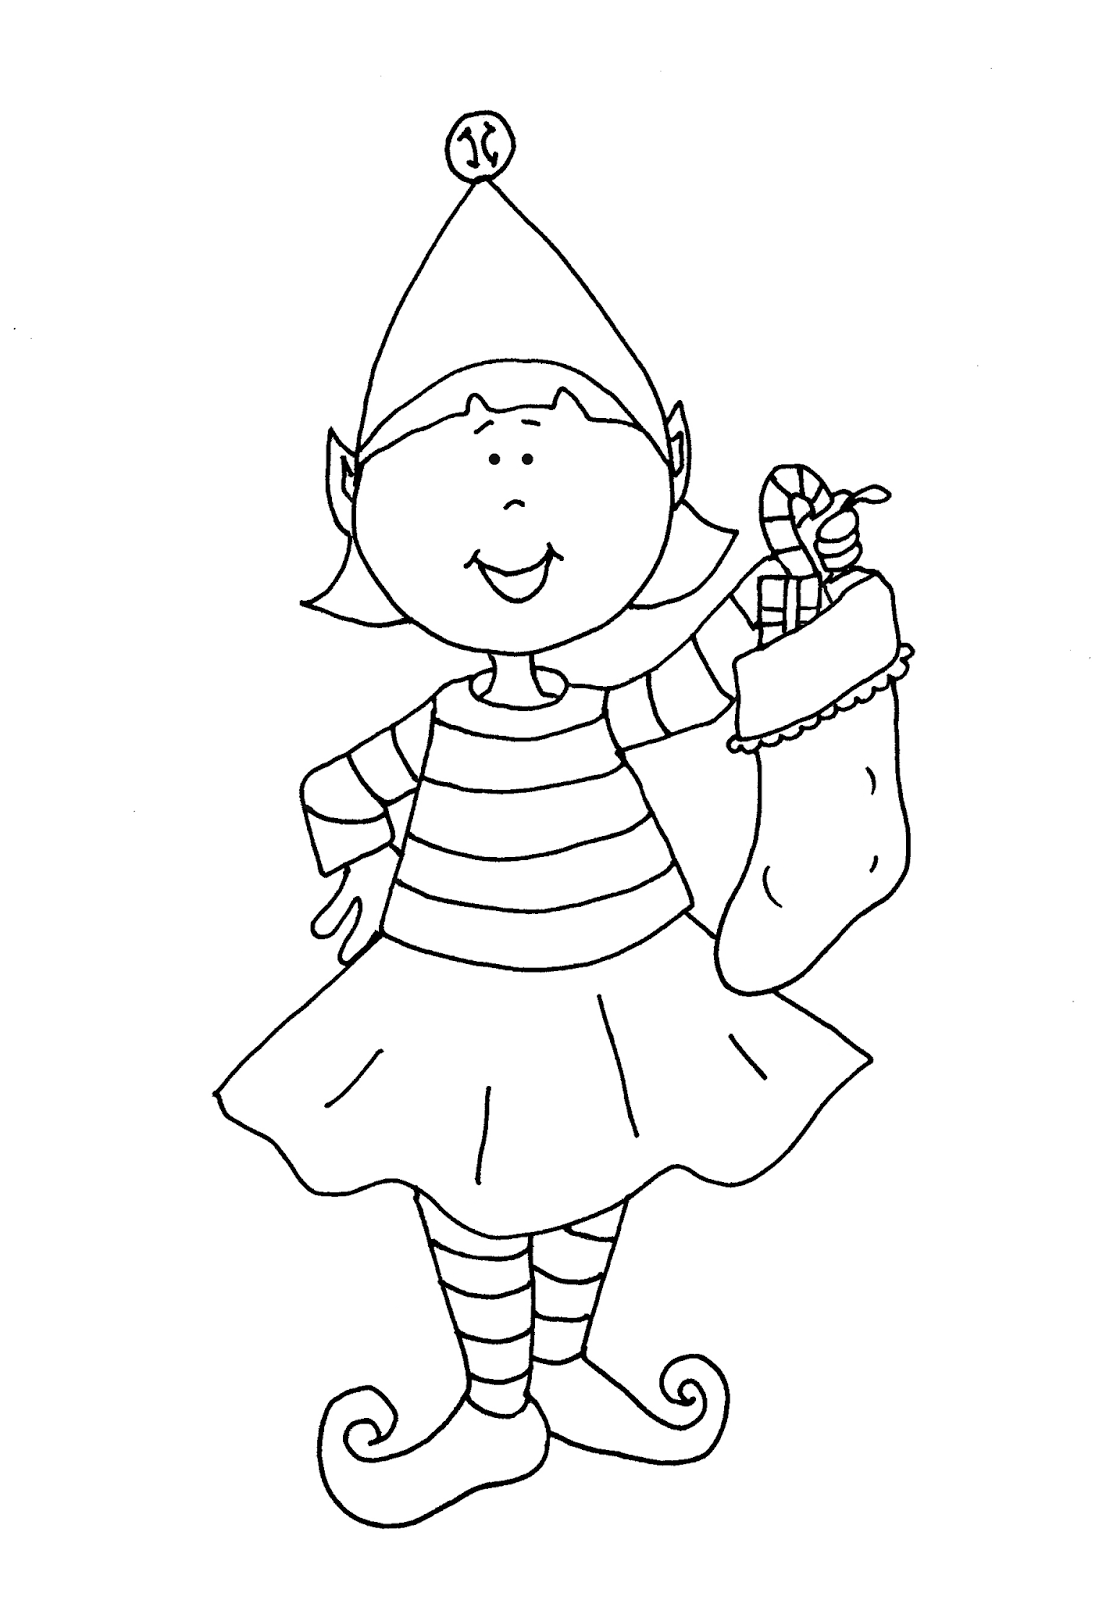 elf christmas coloring pages printable - photo#38